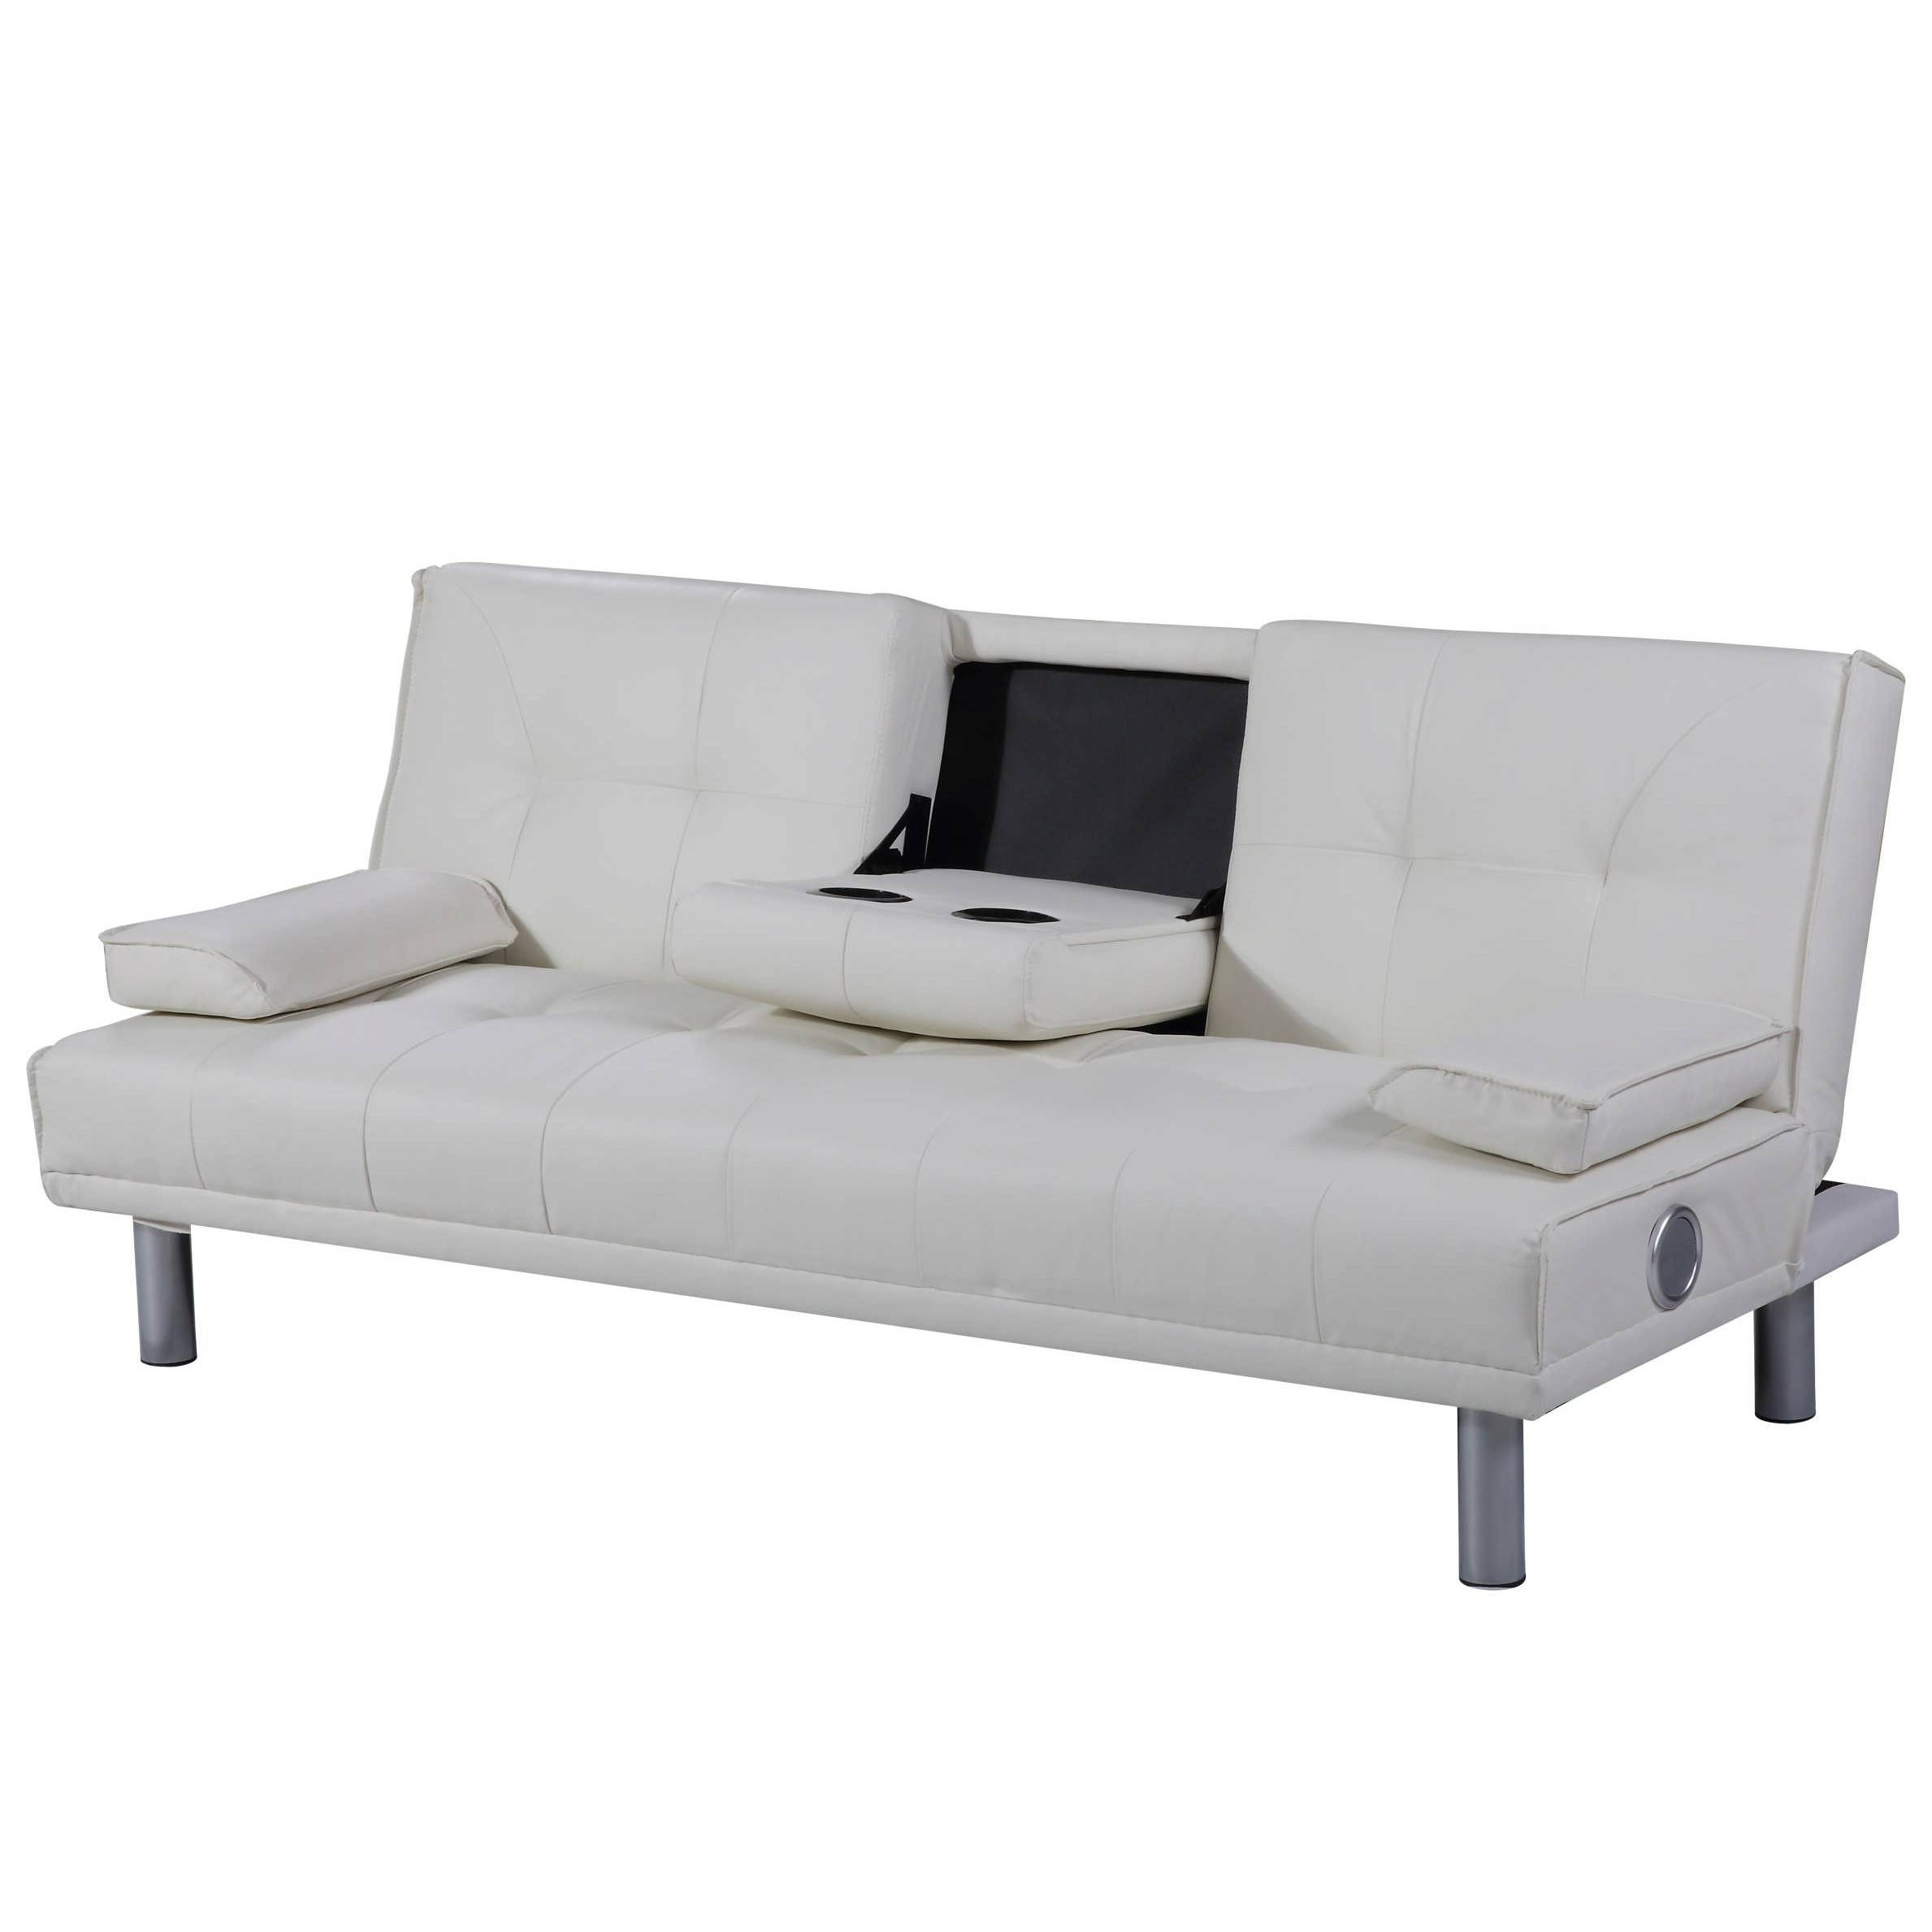 Manhattan Sofa Bed From The Original Factory Shop For Sofa Beds With Mattress Support (View 7 of 15)